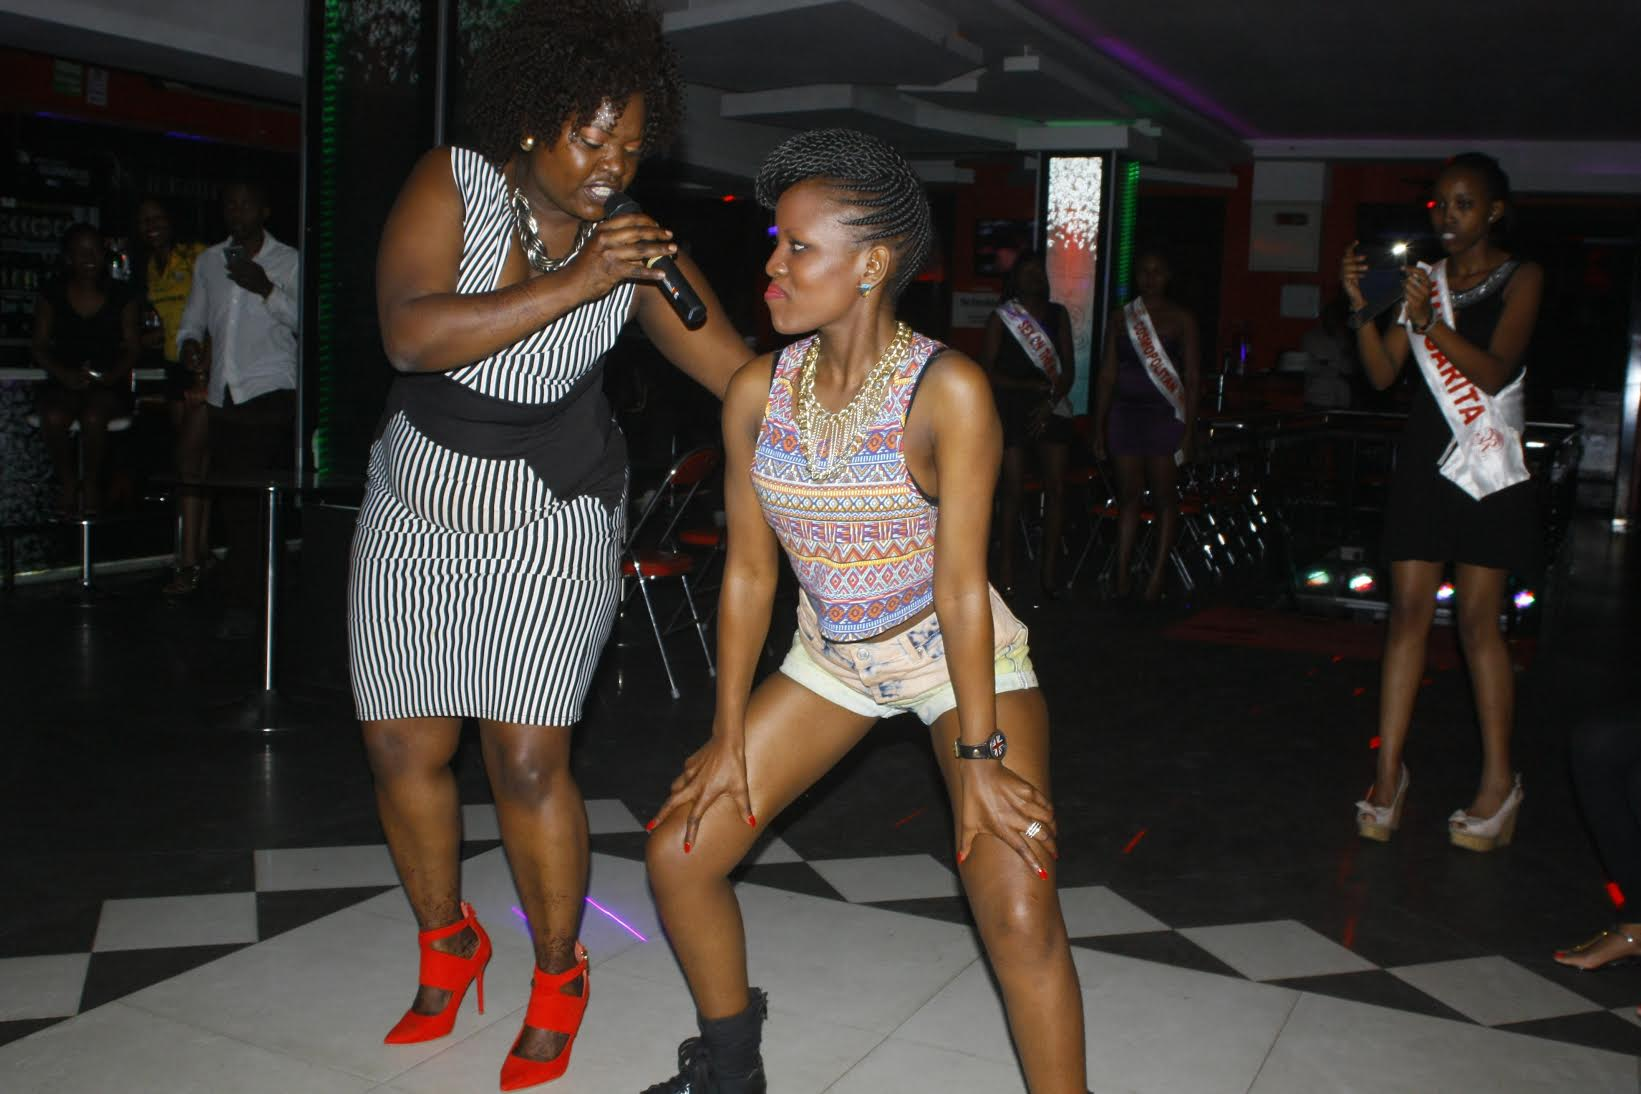 These Women Went All Ratchet Simulating Sex At A Nairobi Club On Sunday Night Photos -7338